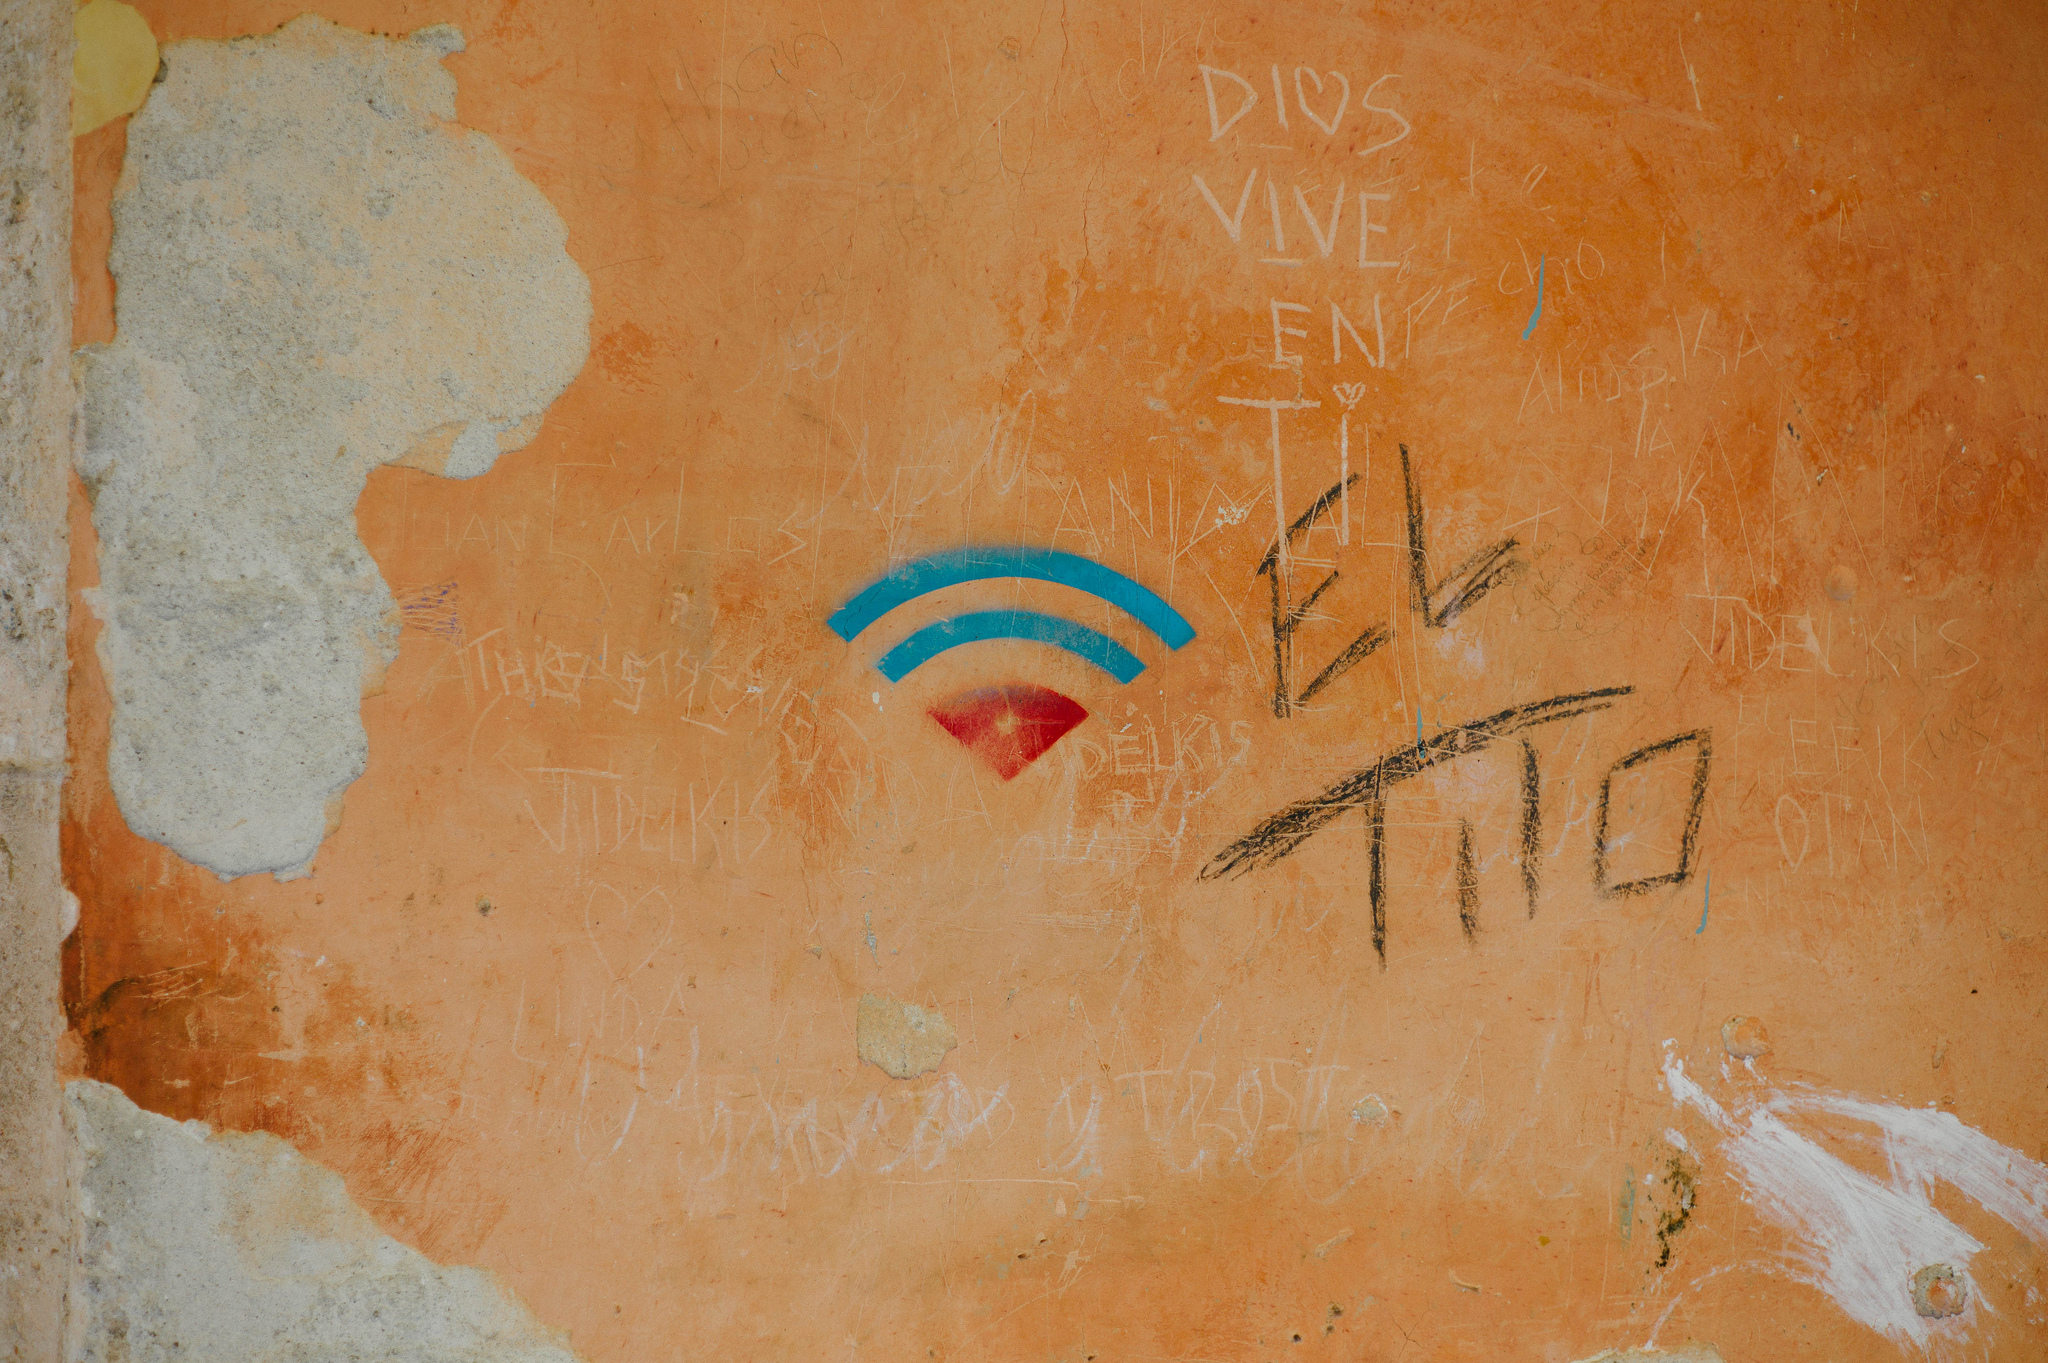 A WiFi symbol in Old Havana, Cuba. Photo by Nano Anderson, taken from Flickr under a CC License BY 2.0.